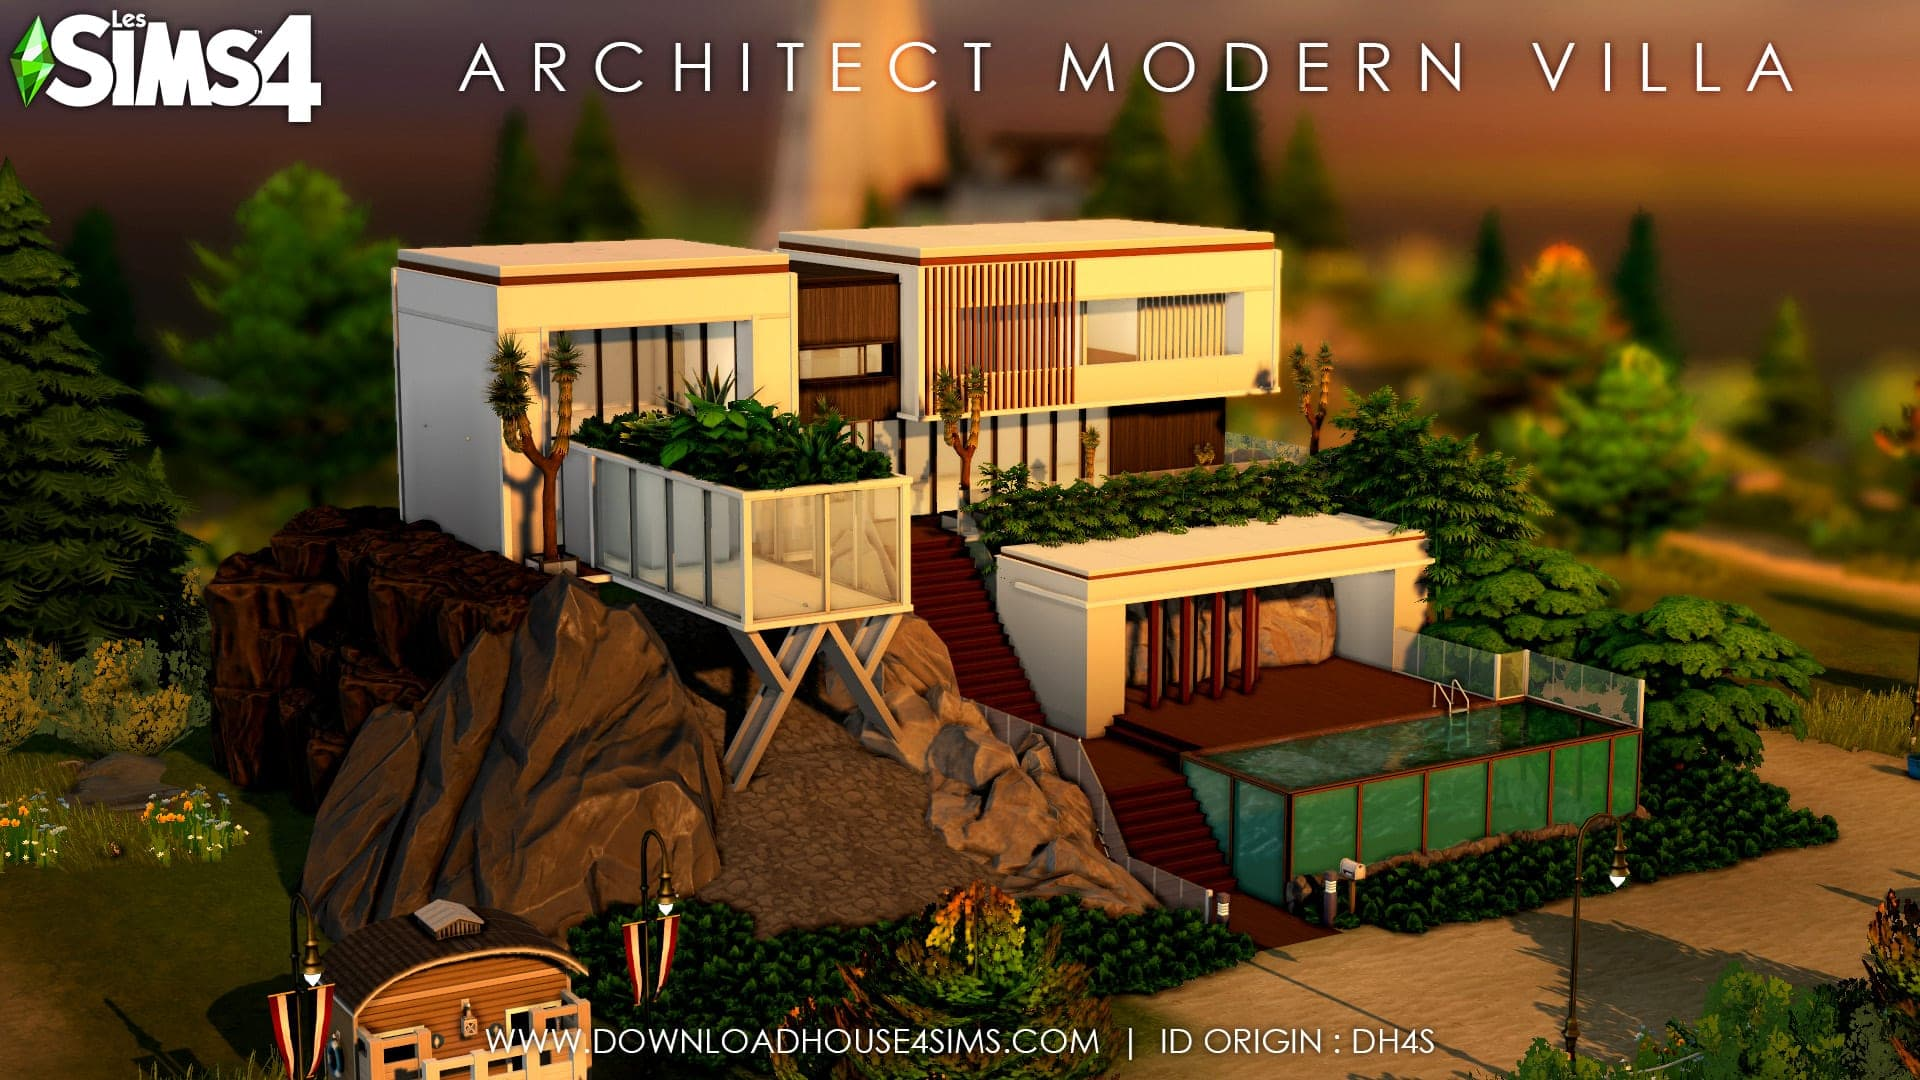 DH4S-Architect-modern-villa-maison-sims-4-a-telecharger-house-download-1